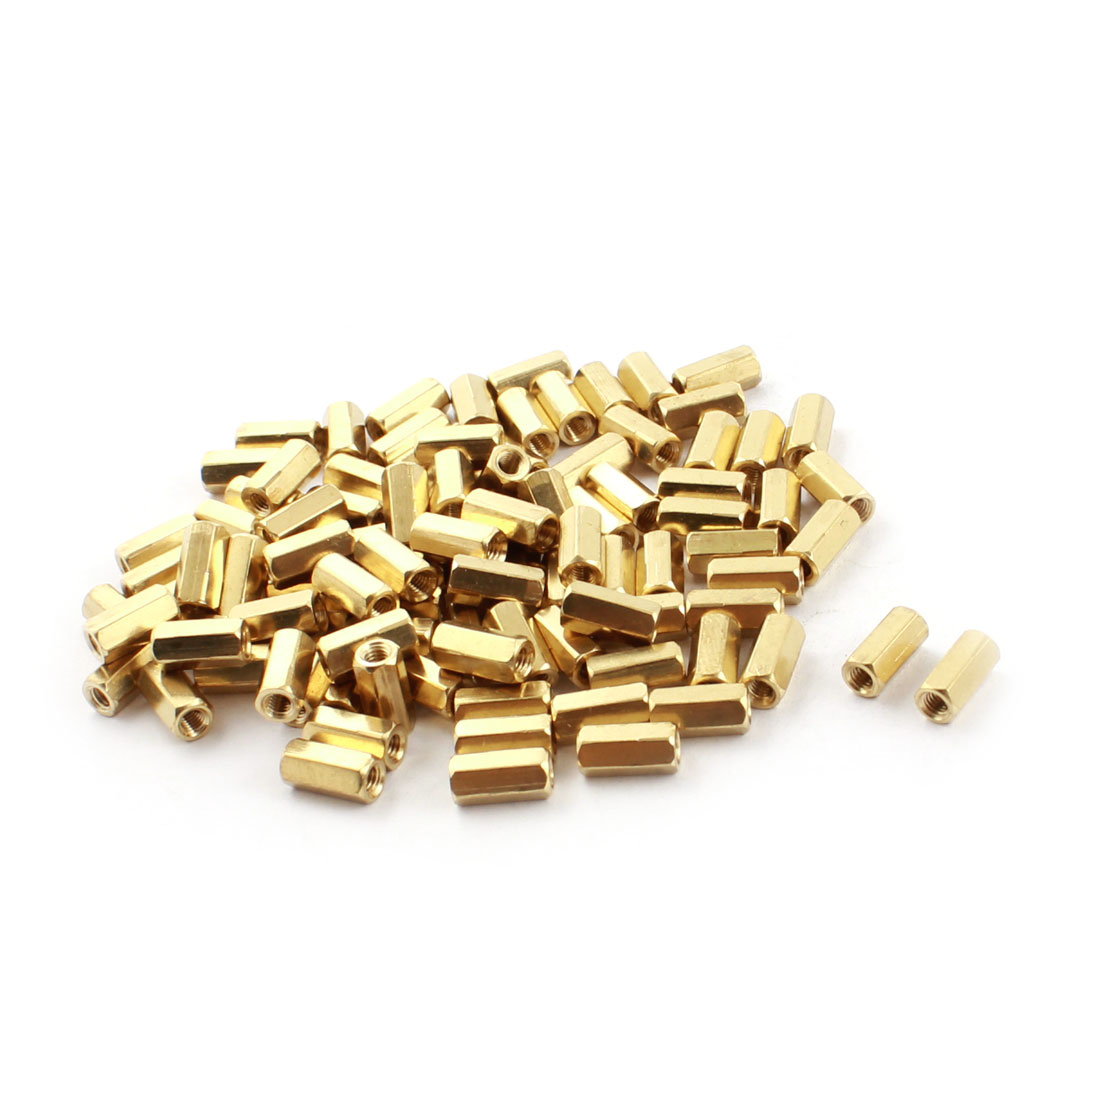 100Pcs M3x10mm Female Thread Dual Ends Gold Tone Brass Pillar PCB Standoff Hexagonal Nut Spacer